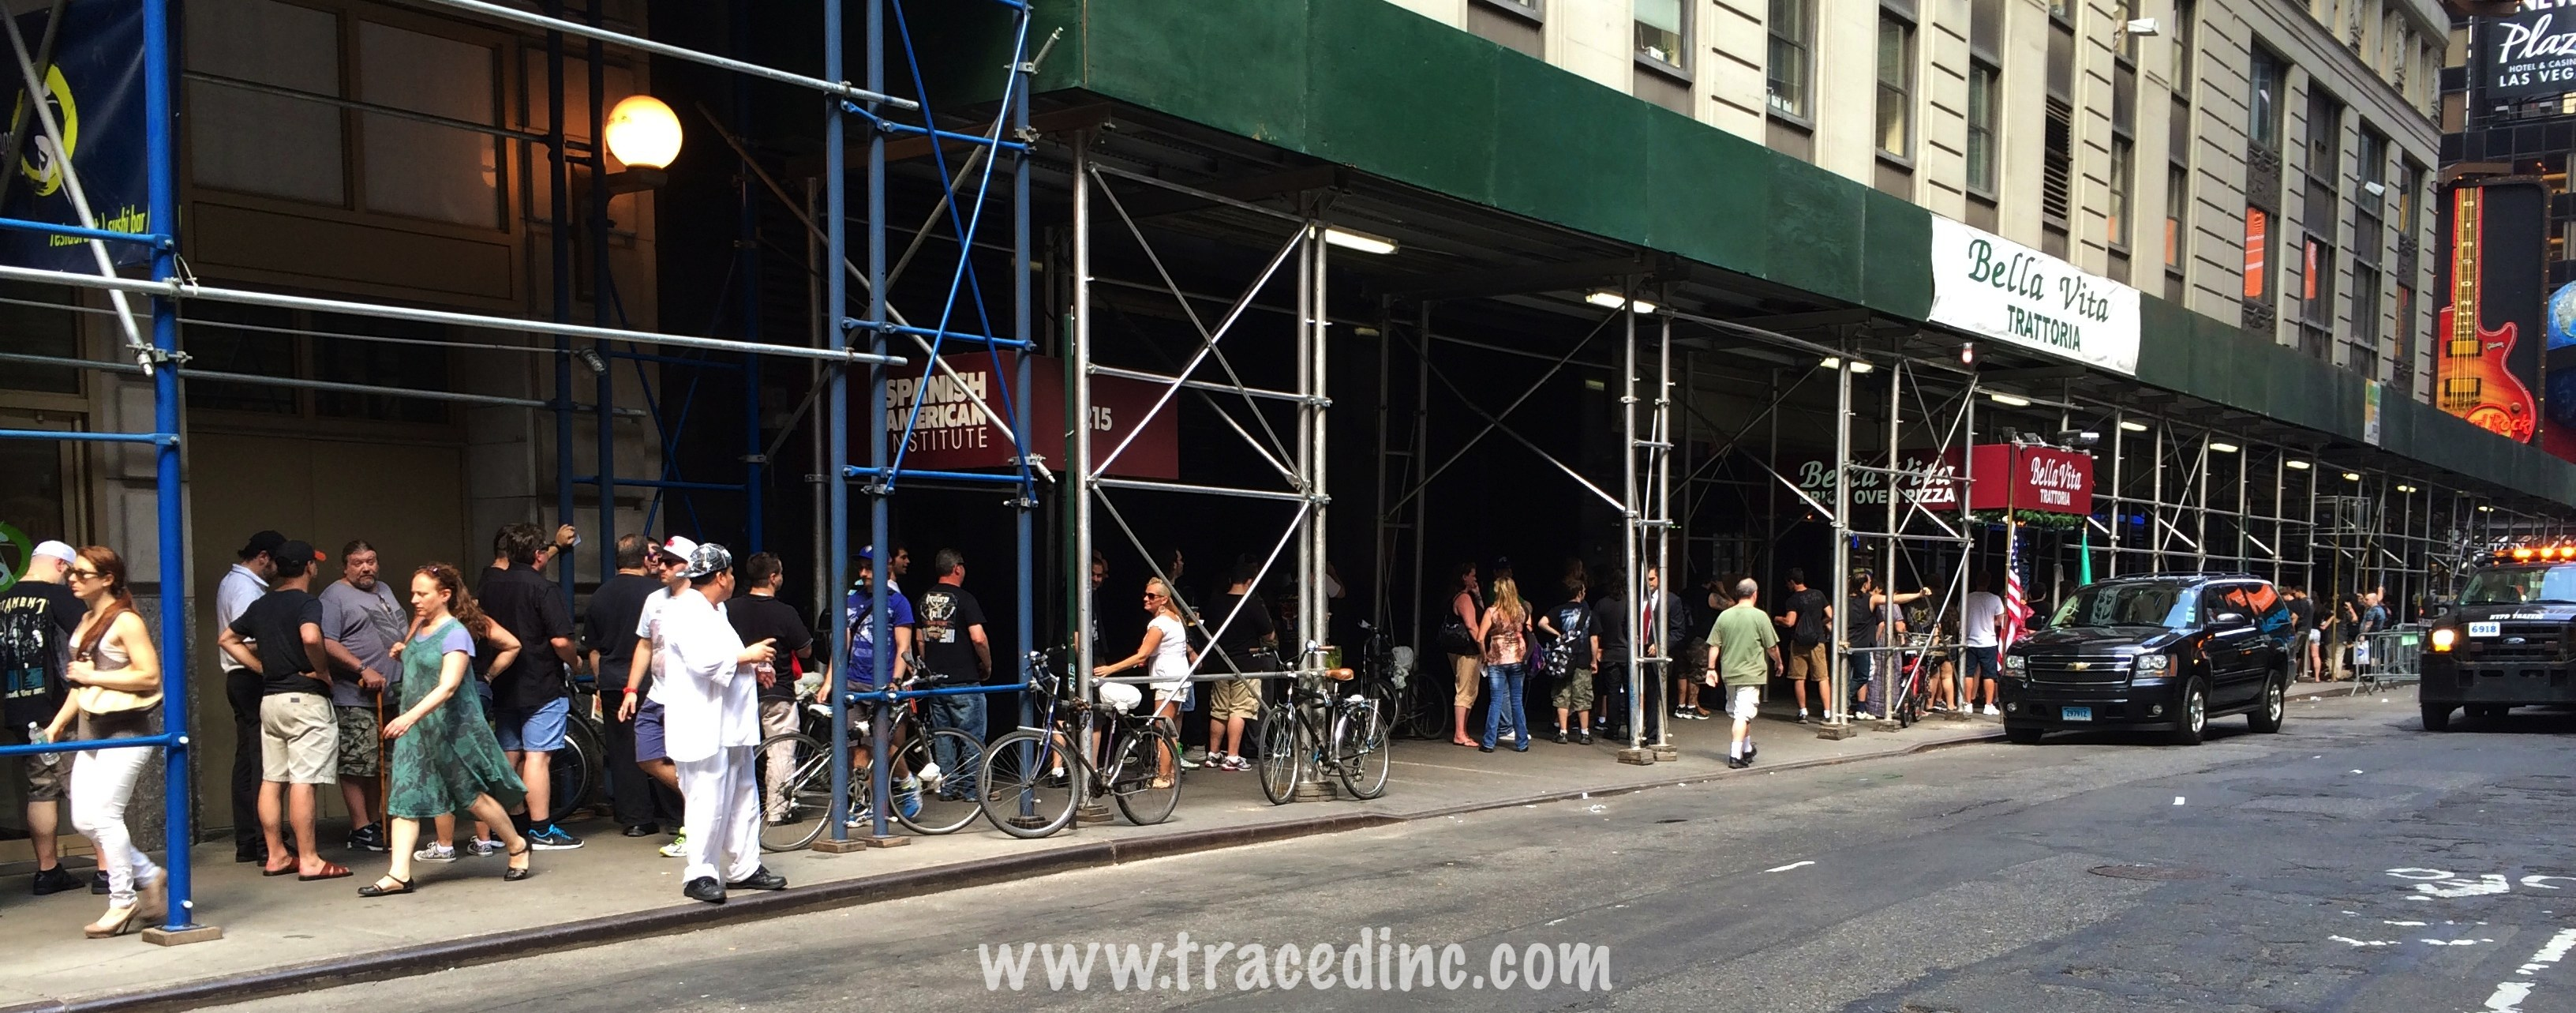 Fans wait to buy the new Judas Priest CD